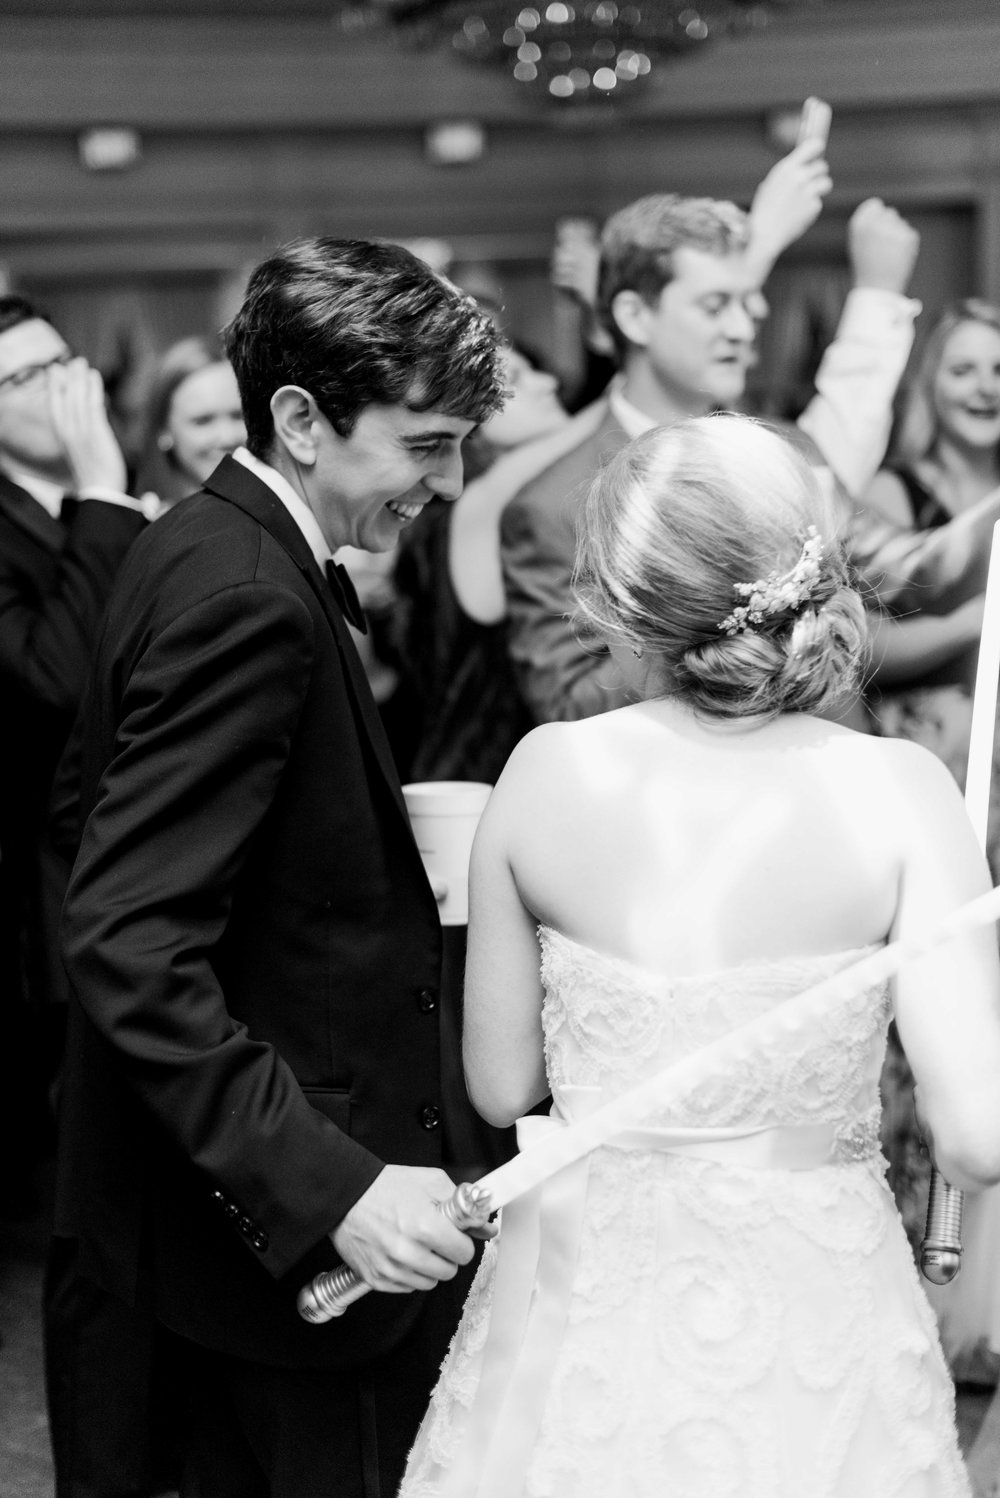 Fine-Art-Film-Houston-Wedding-Photographer-Best-Top-Luxury-Texas-Austin-Dallas-Destination-Dana-Fernandez-Photography-River-Oaks-Country-Club-South-Main-Baptist-Ceremony-Reception-Wedding-40.jpg